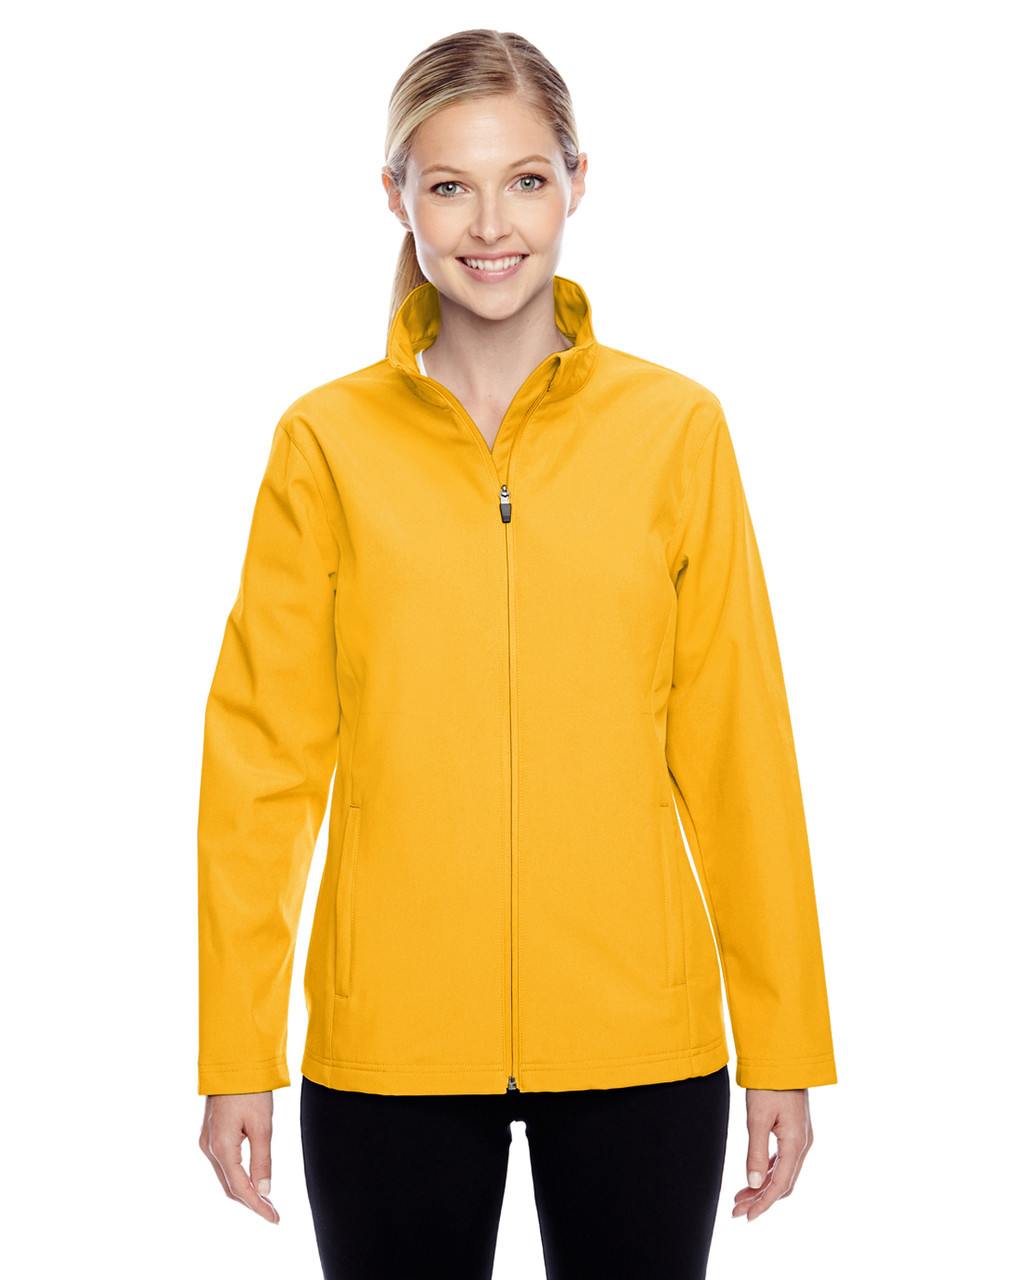 Athletic Gold - TT80W Team 365 Leader Soft Shell Jacket | BlankClothing.ca